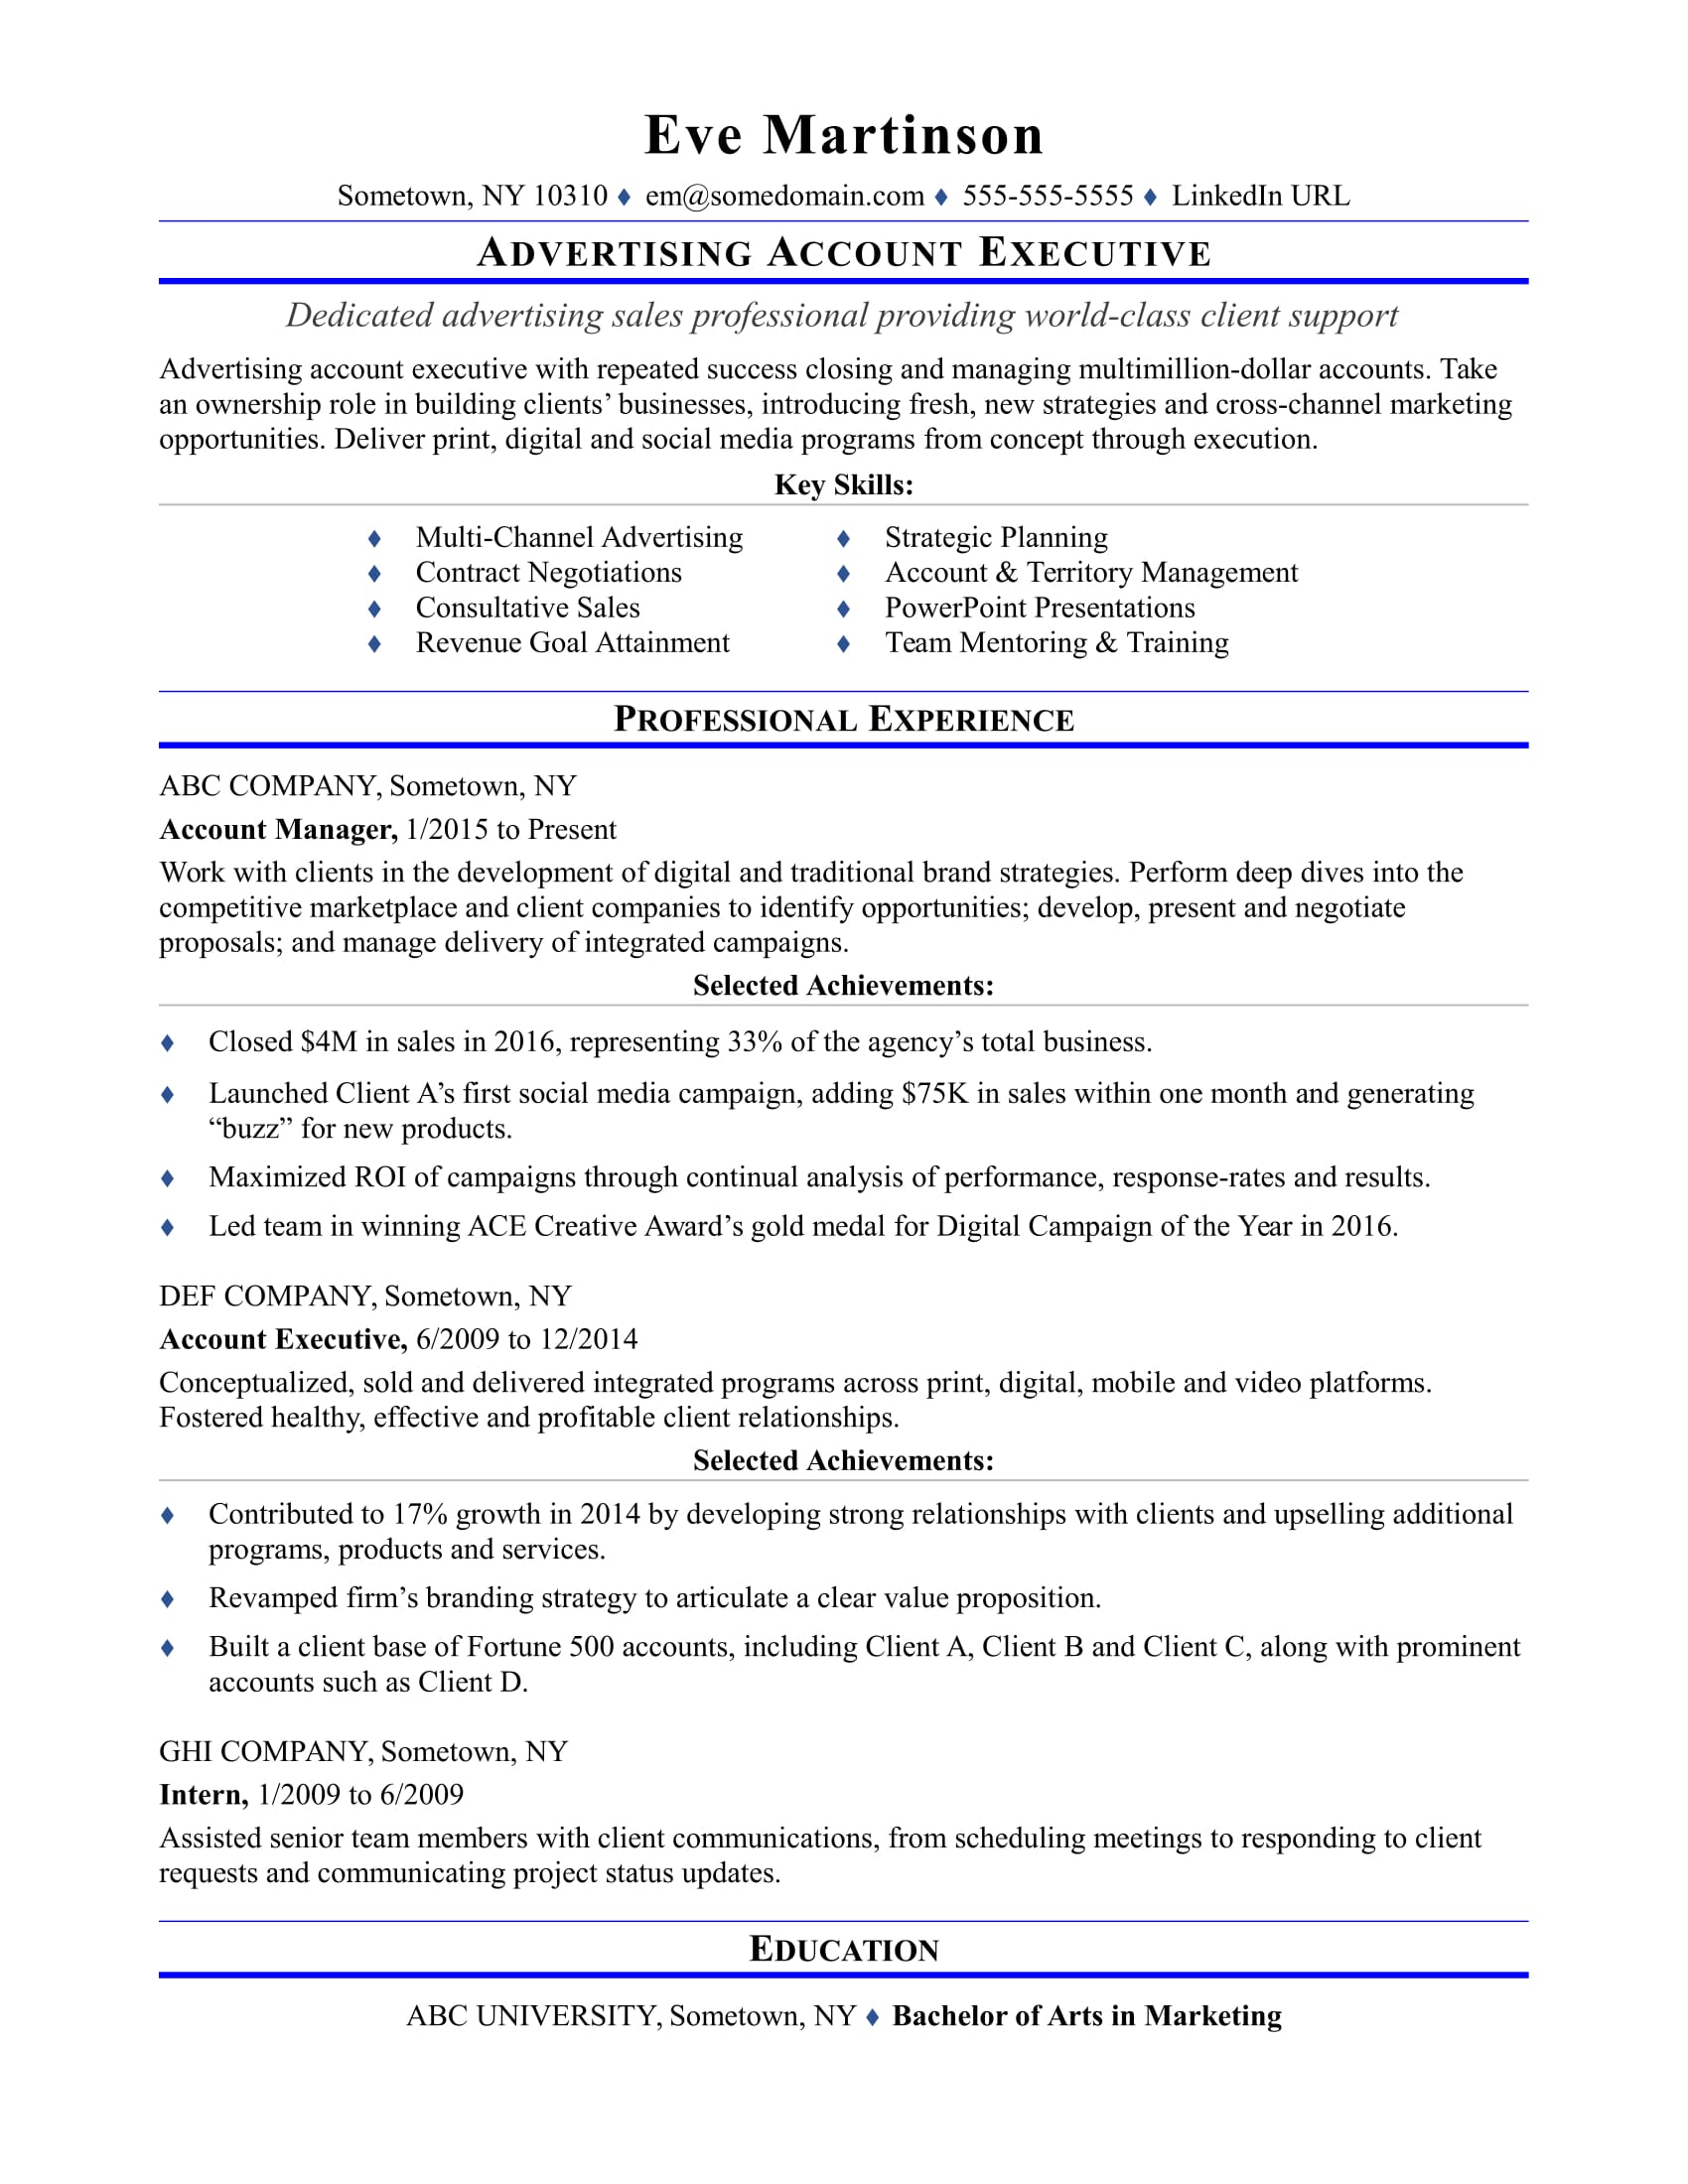 sample resume for an advertising account executive monster client service social worker Resume Sample Resume For Client Service Executive